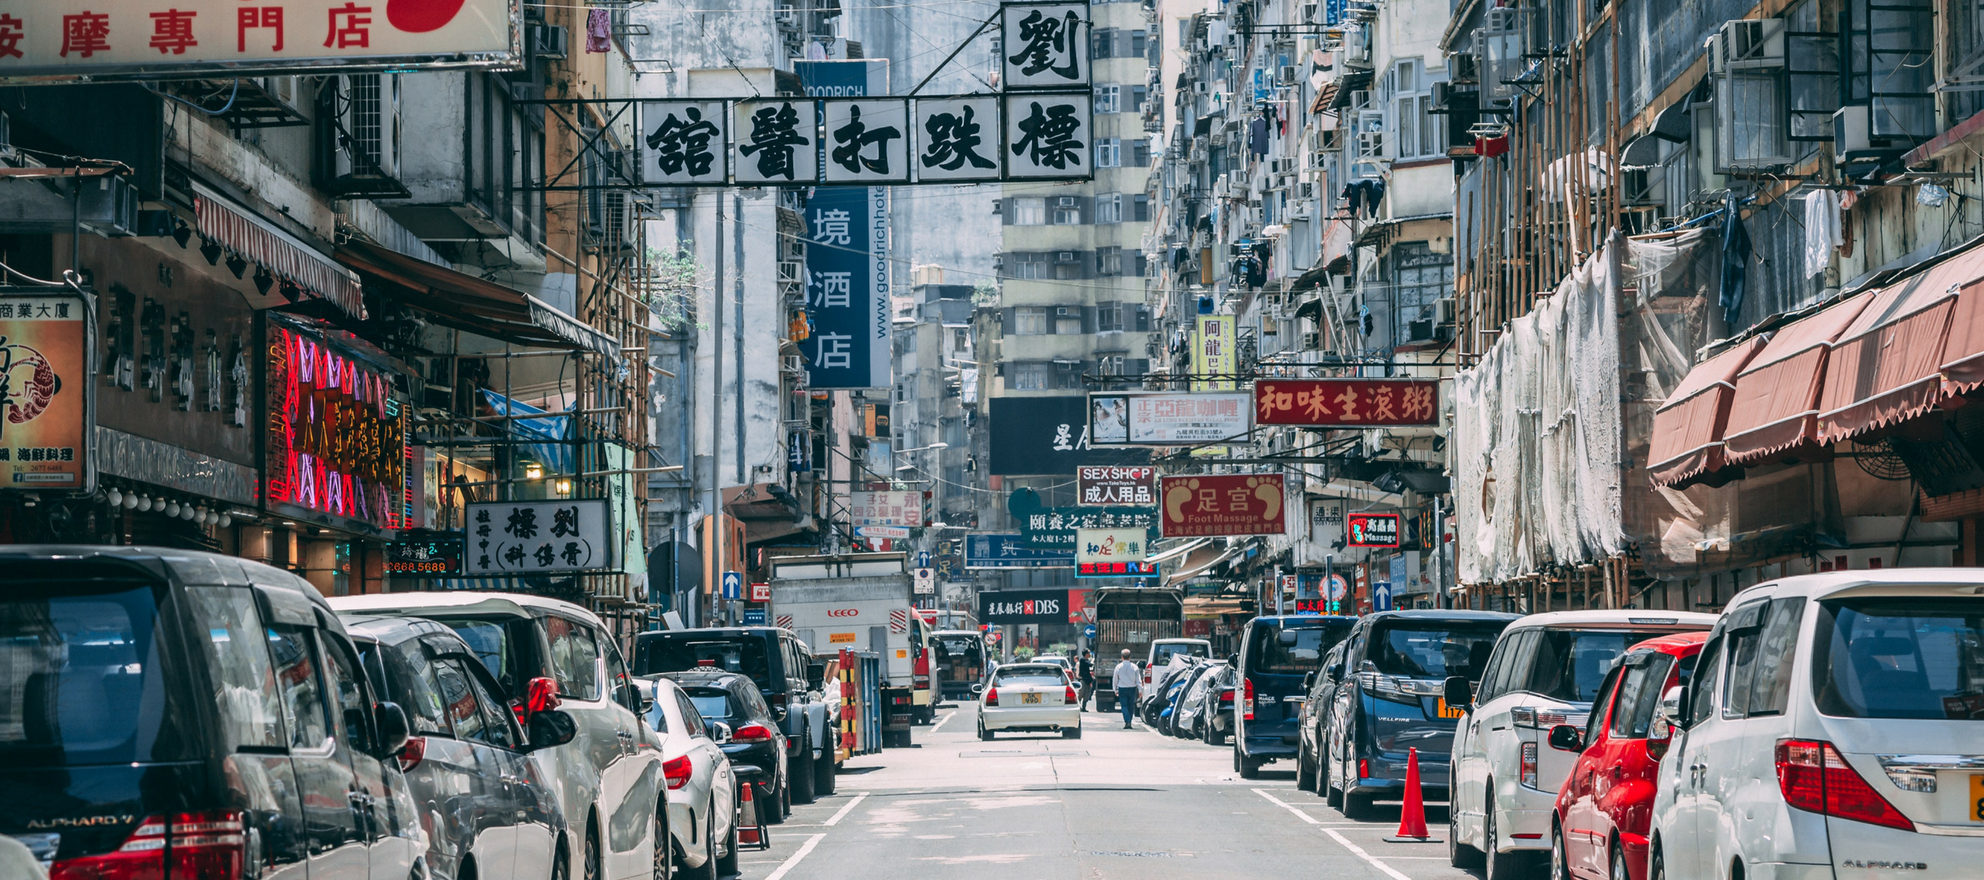 Hong Kong millennials are skirting the law to avoid sky-high rent